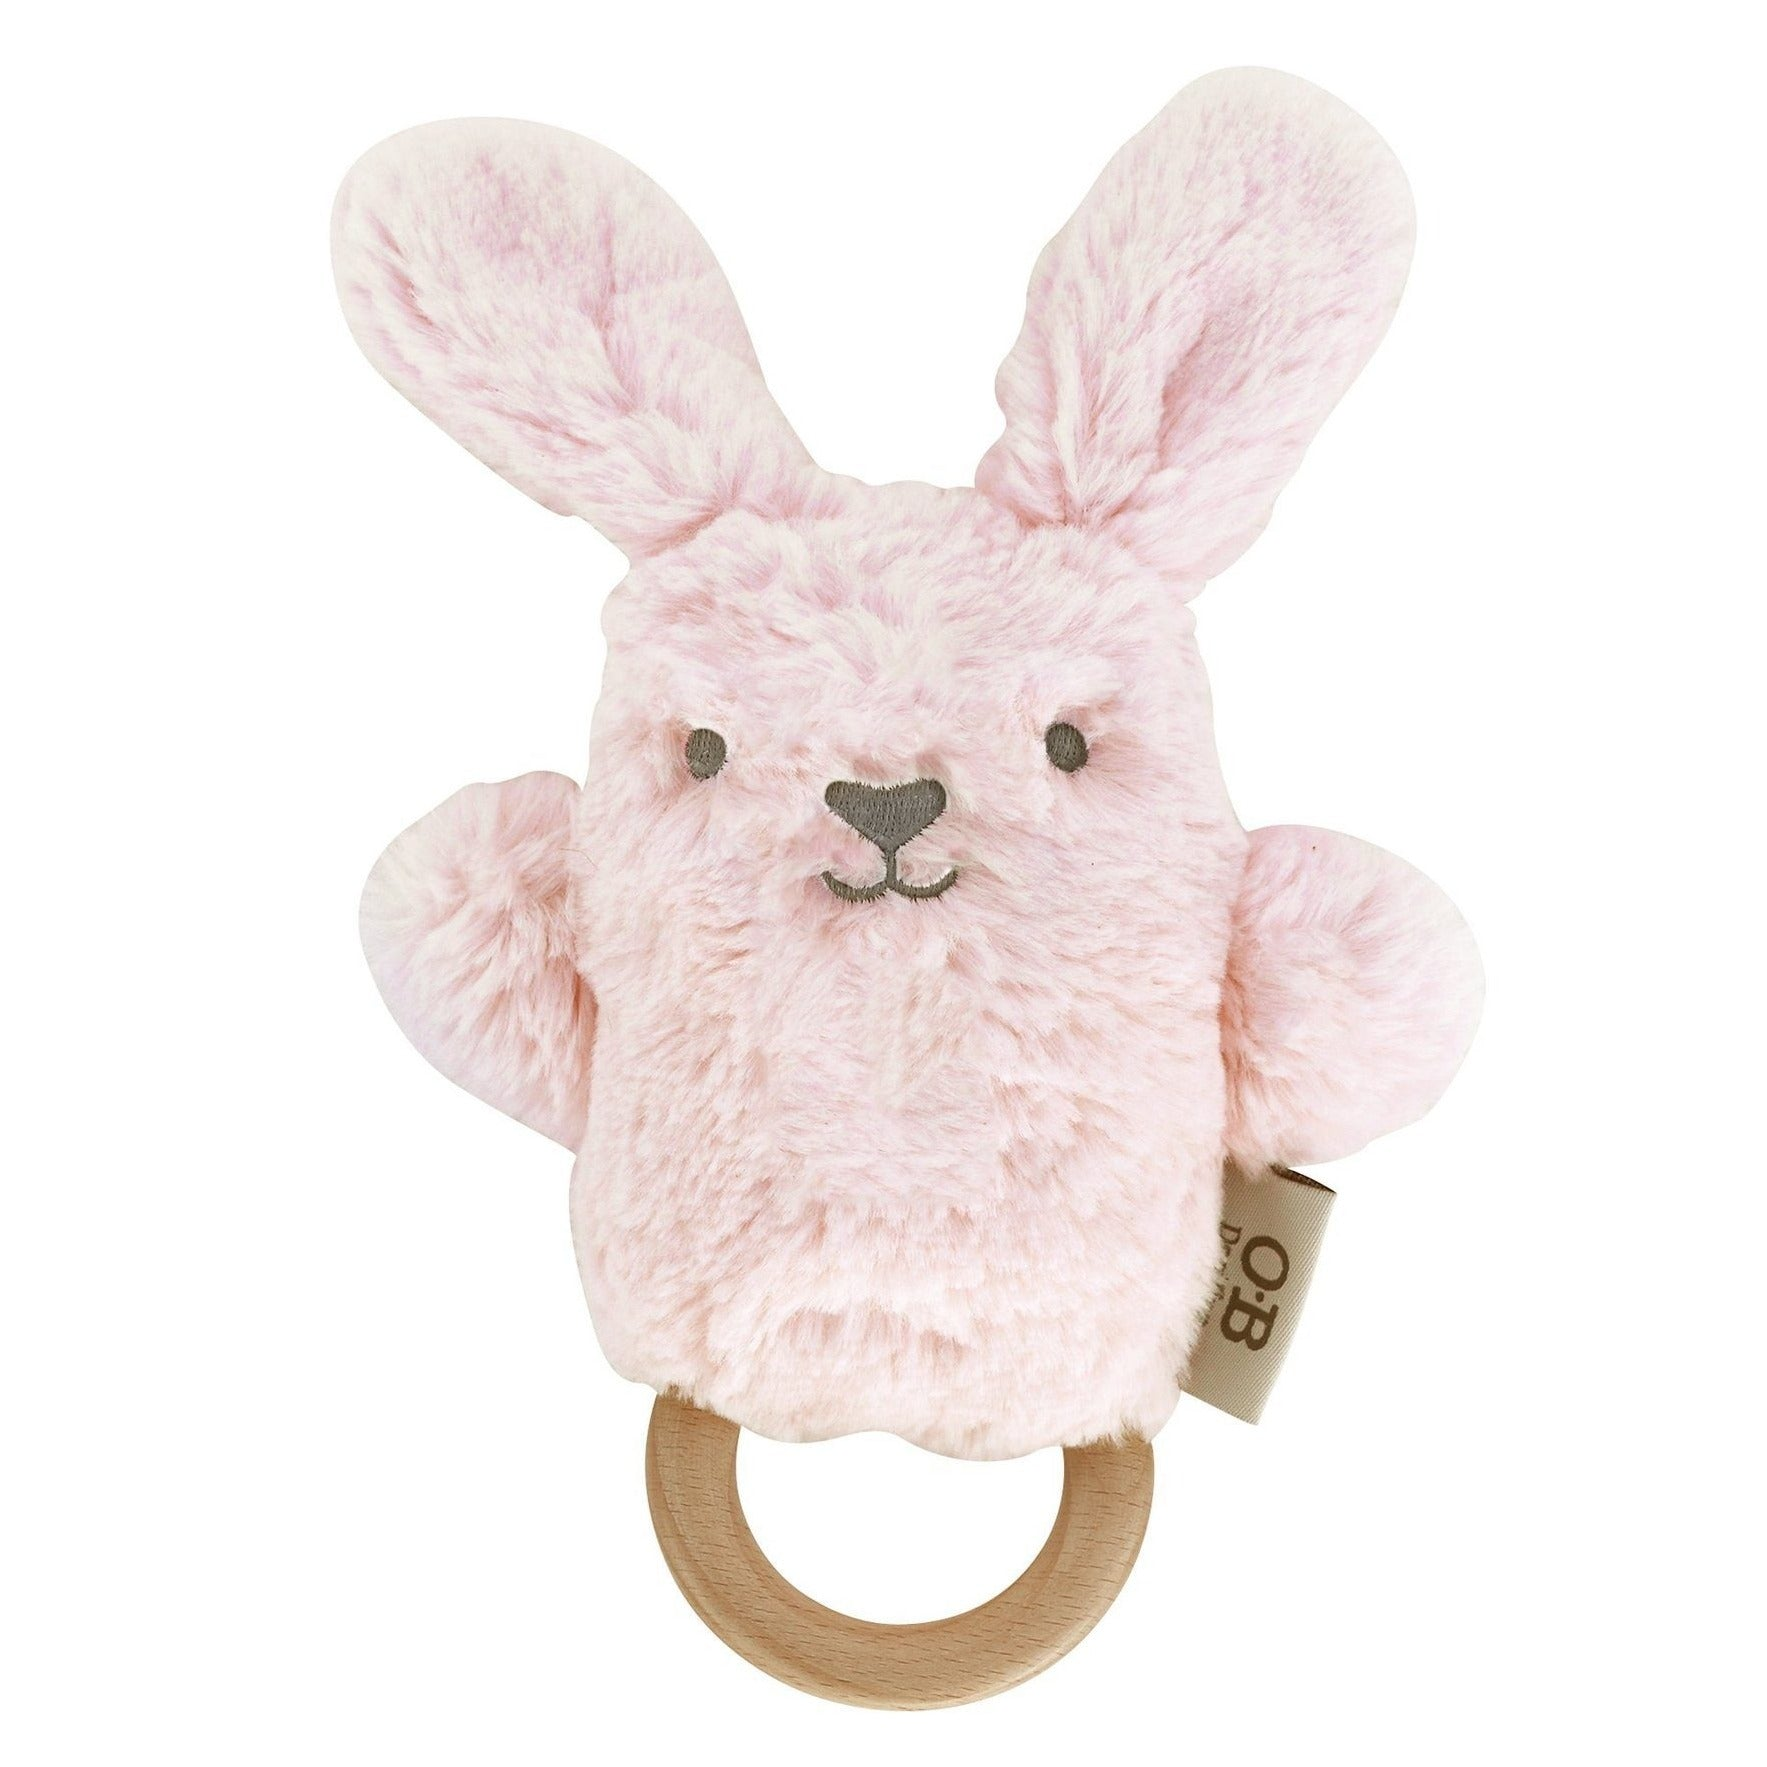 O.B. Designs: Betsy Bunny Wooden Teether